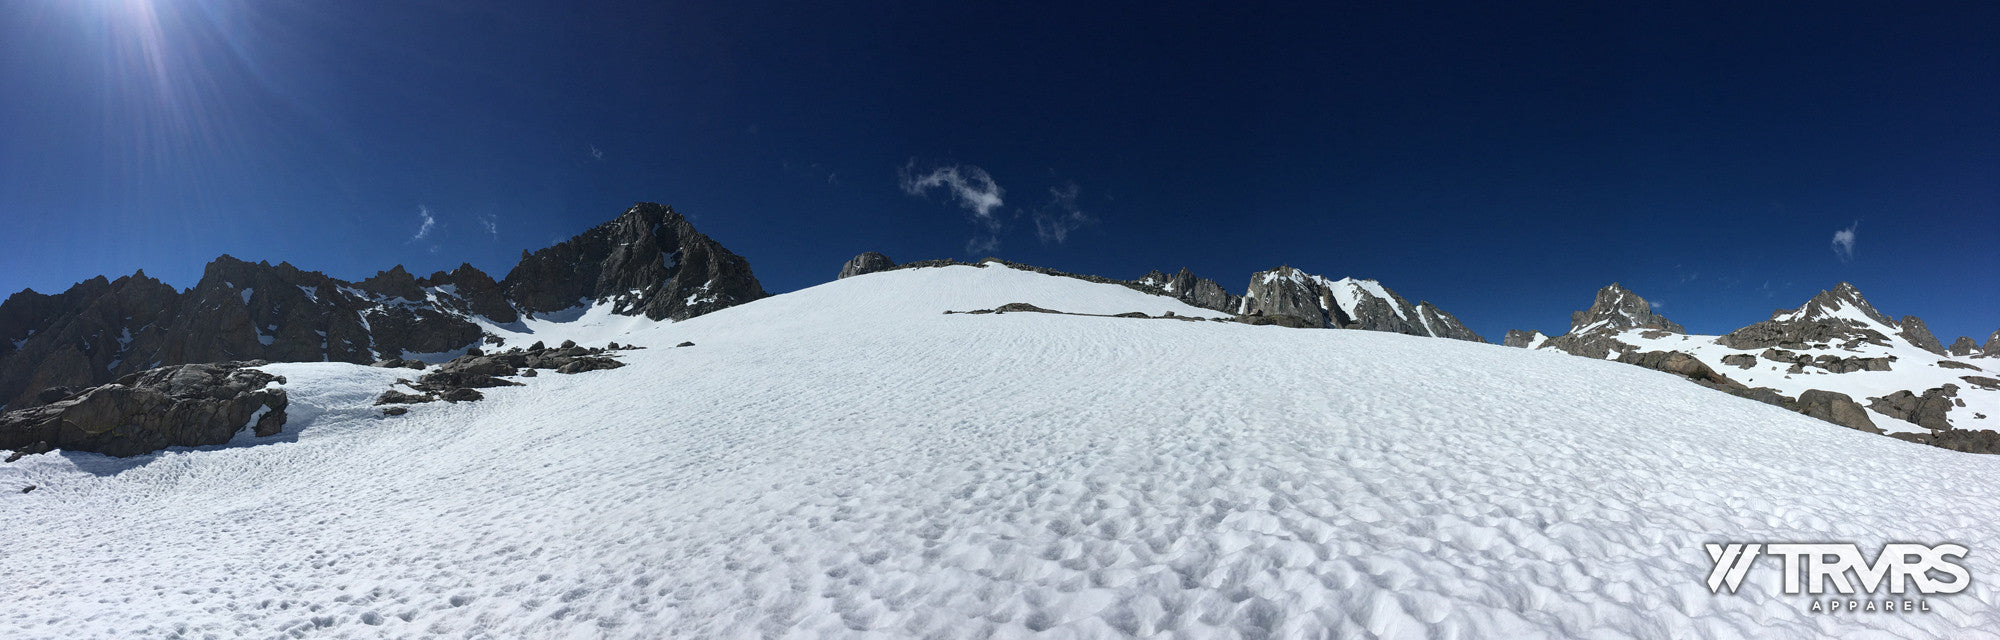 A Snowy Slope Approaching Palisade Glacier - Big Pine Lakes | TRVRS APPAREL